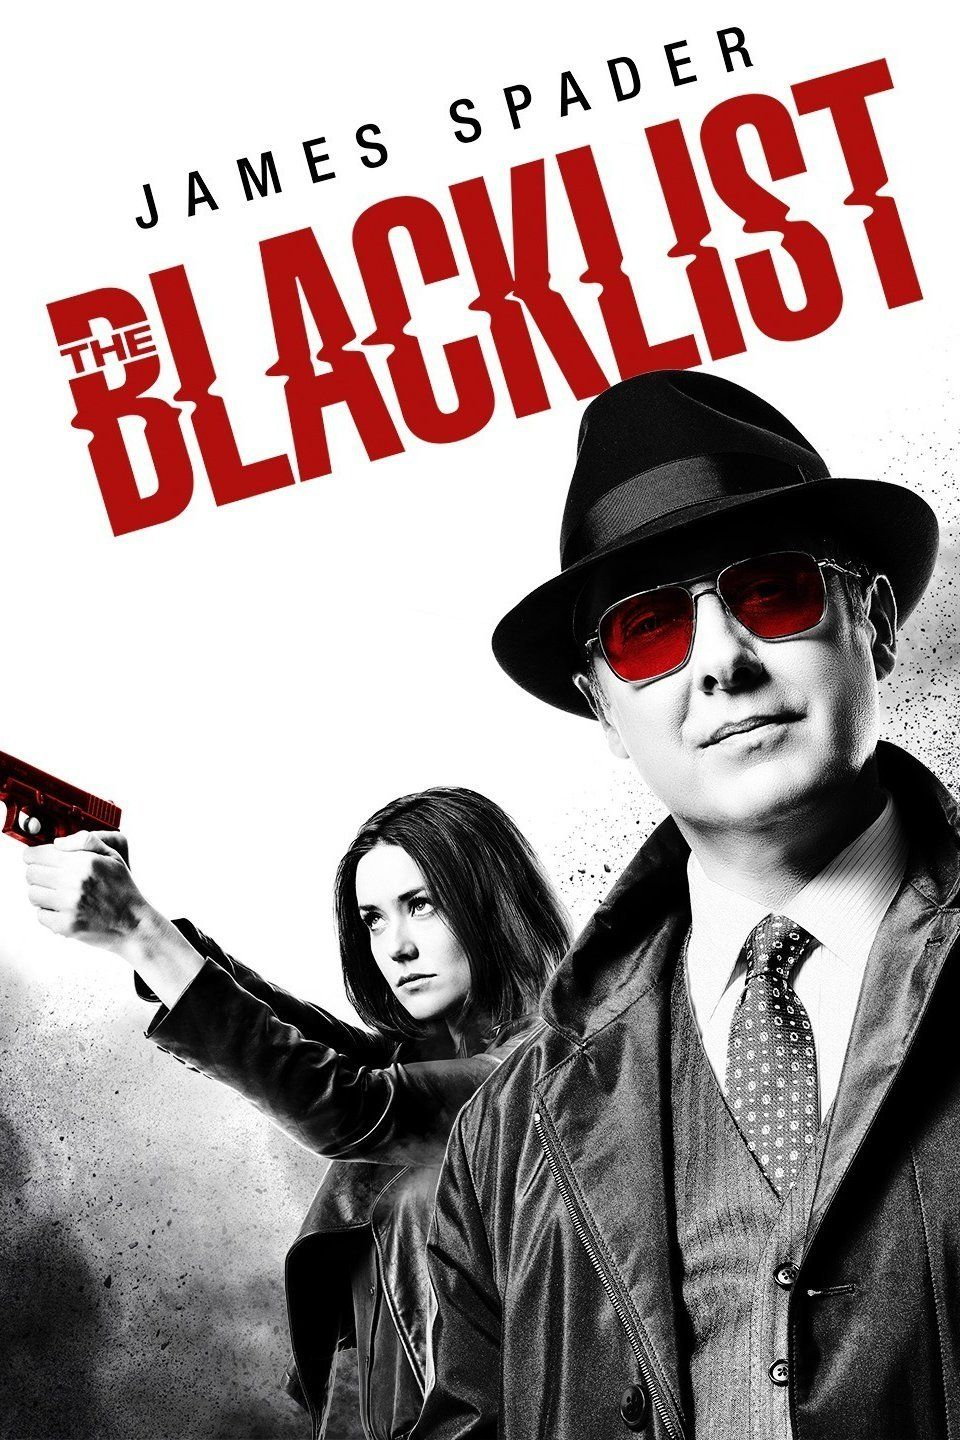 Nbc Has Renewed The Blacklist For Season 4 And There Is Even A Talk About A Potential Season 5 According To James Spader Megan Boone The Blacklist Tv Series